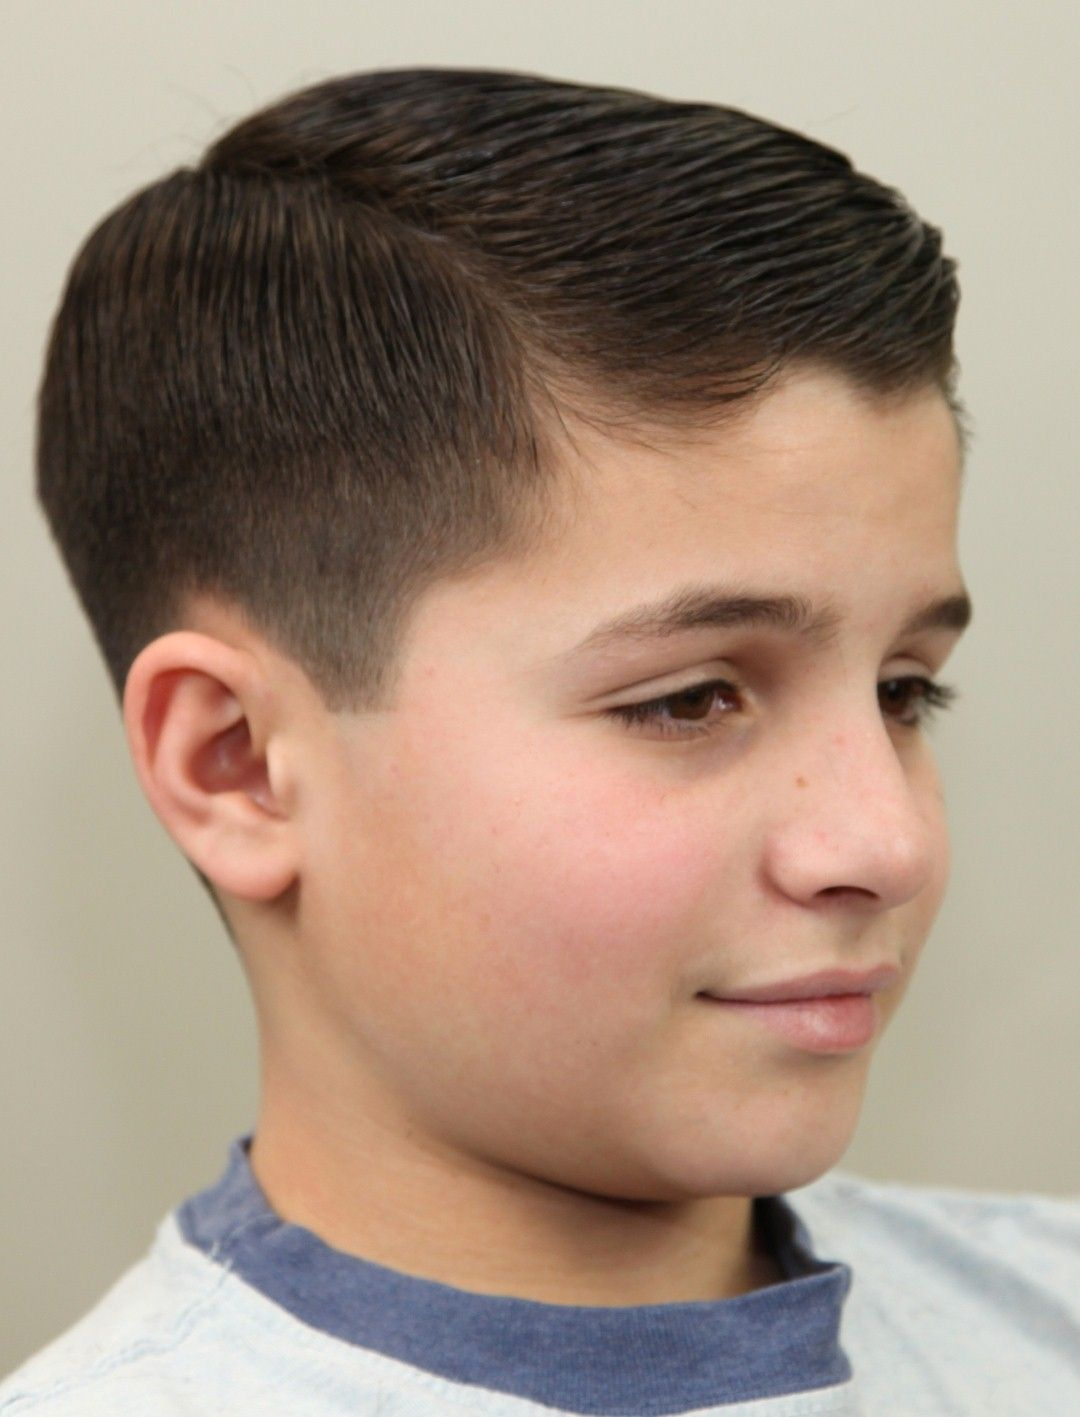 Hairstyles For Little Kids Hairstyles Haircut Haircuts For Little Boys Hair Styles For Kids